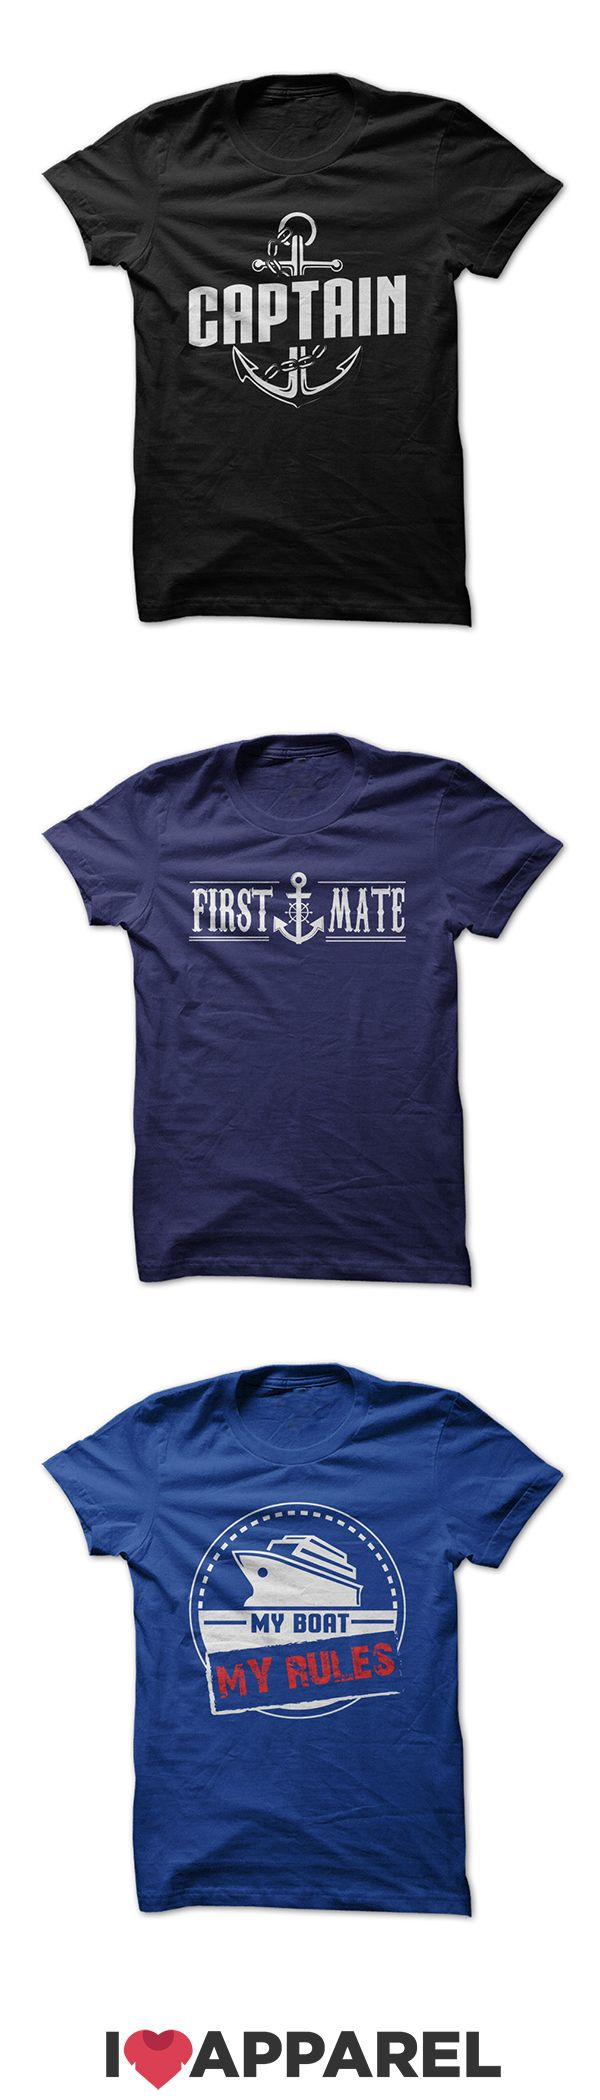 Boating t-shirts, women's fit t-shirts and hoodies made just for those who love spending time on the water. Check out the variety of colors today at ILoveApparel.com.